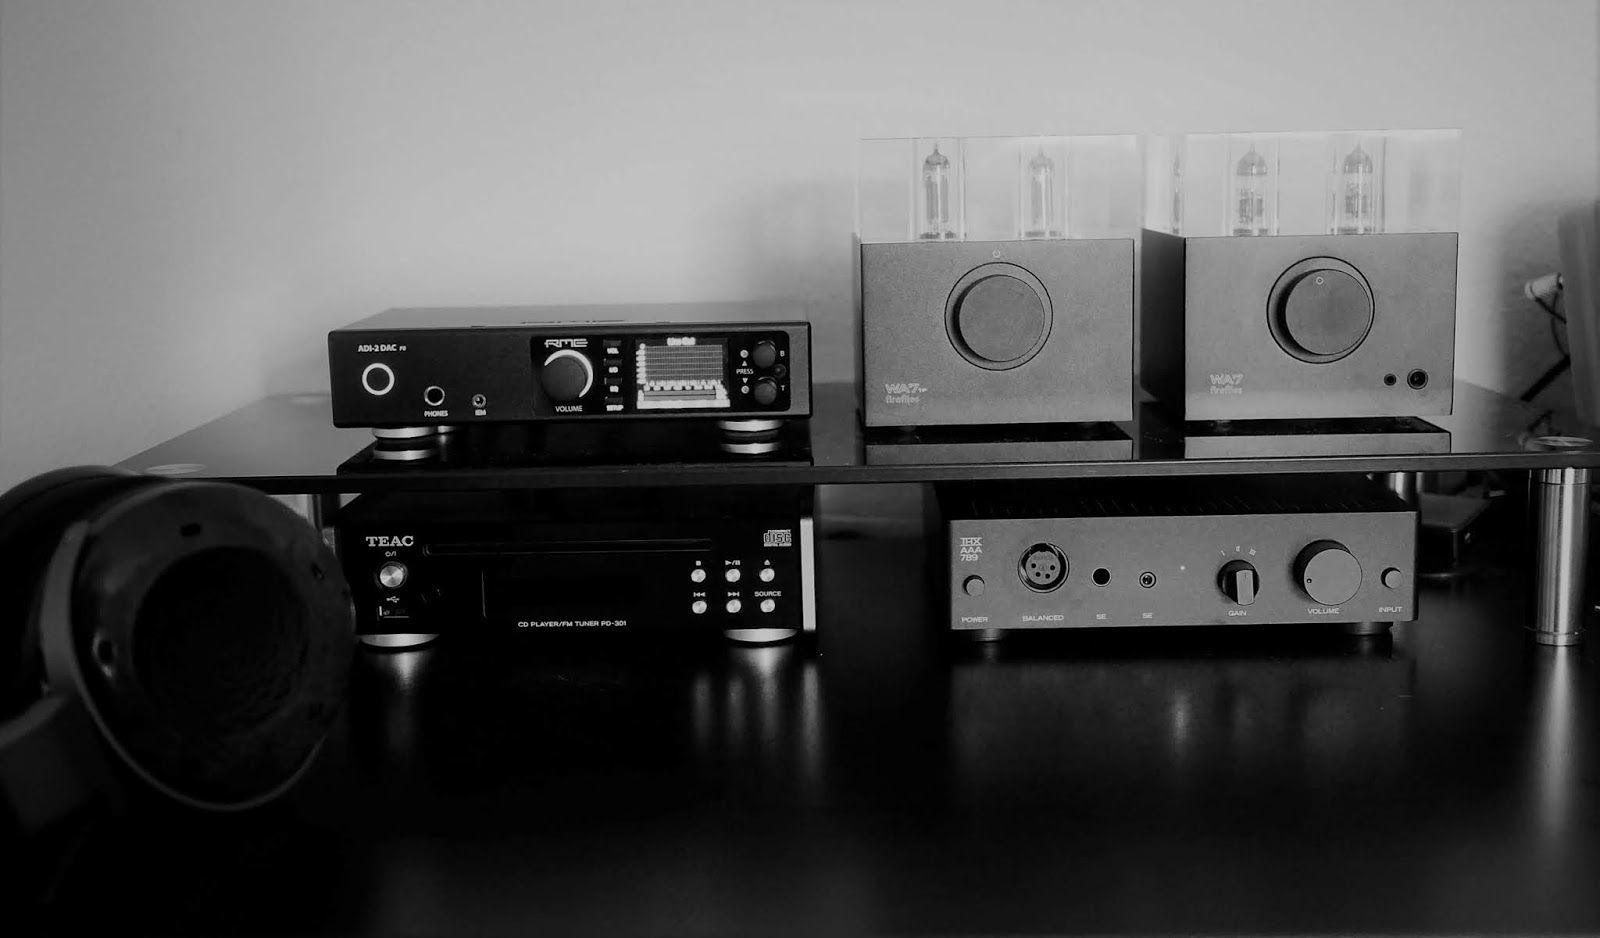 Impressions of my Set-Up: RME ADI-2 DAC, Woo Audio WA7